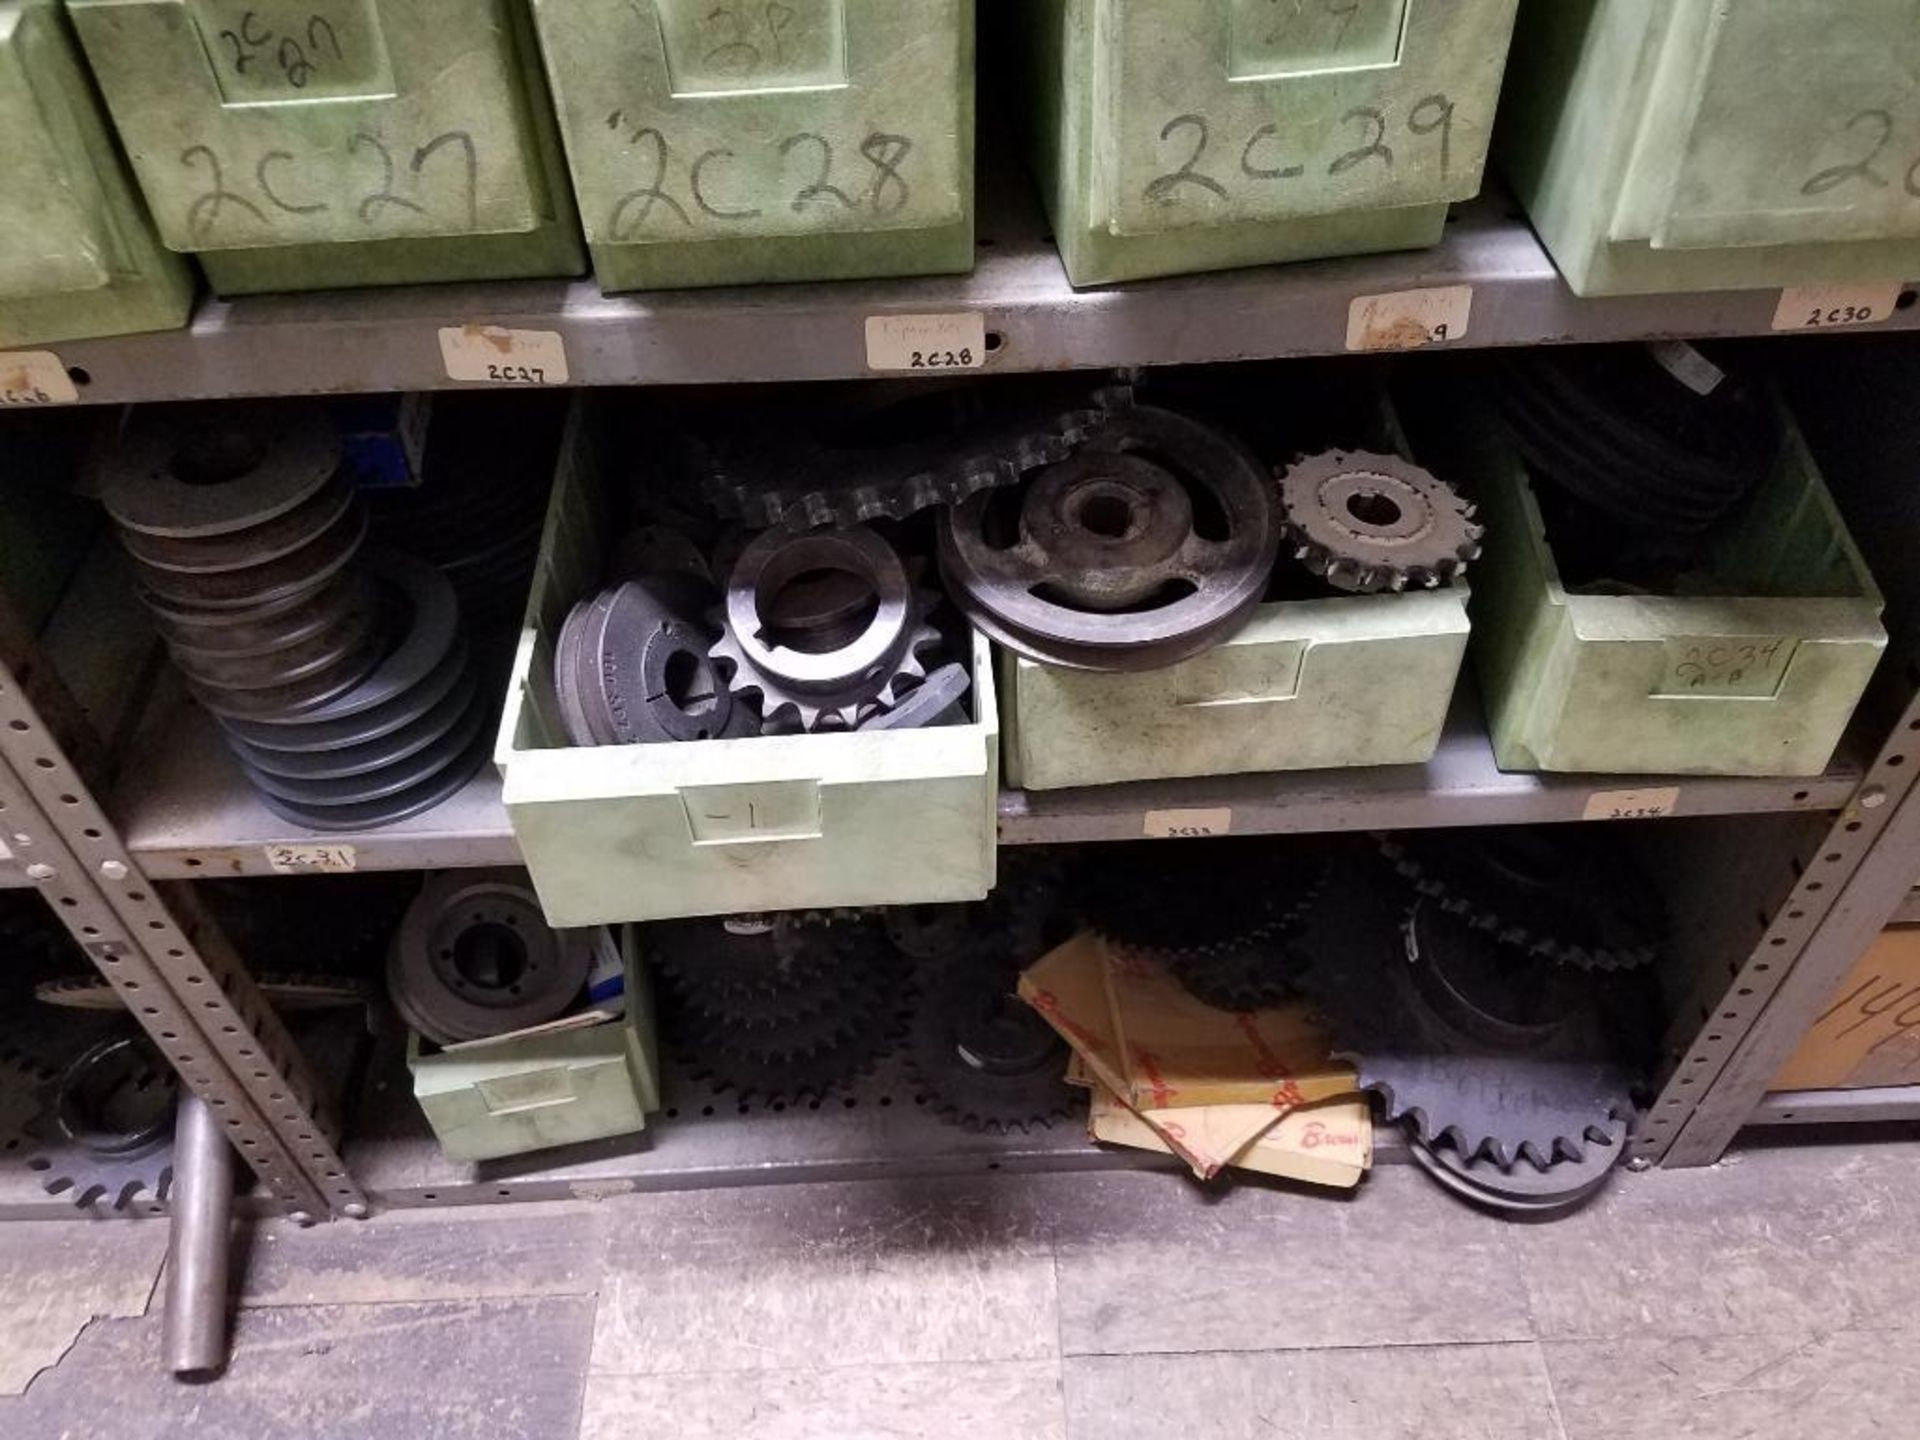 various replacement parts, conveyor belts, electrical components, gears and gauges - Image 14 of 21